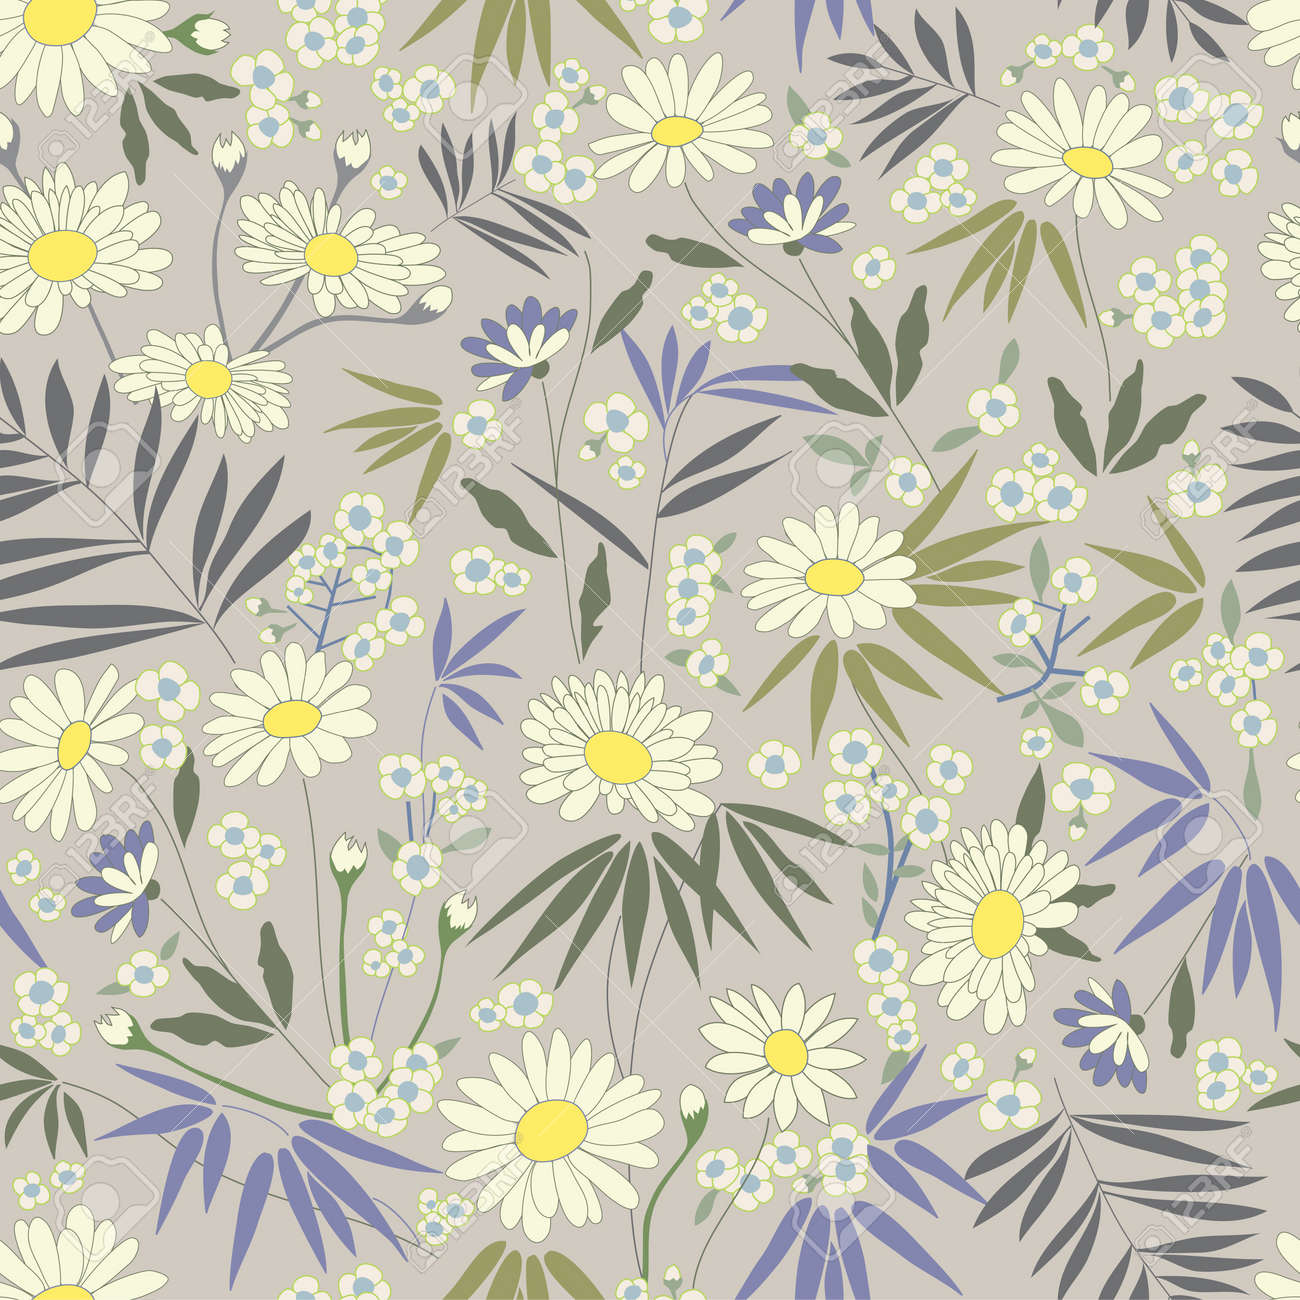 Daisy Themed Repeating Pattern Stock Vector - 11951545